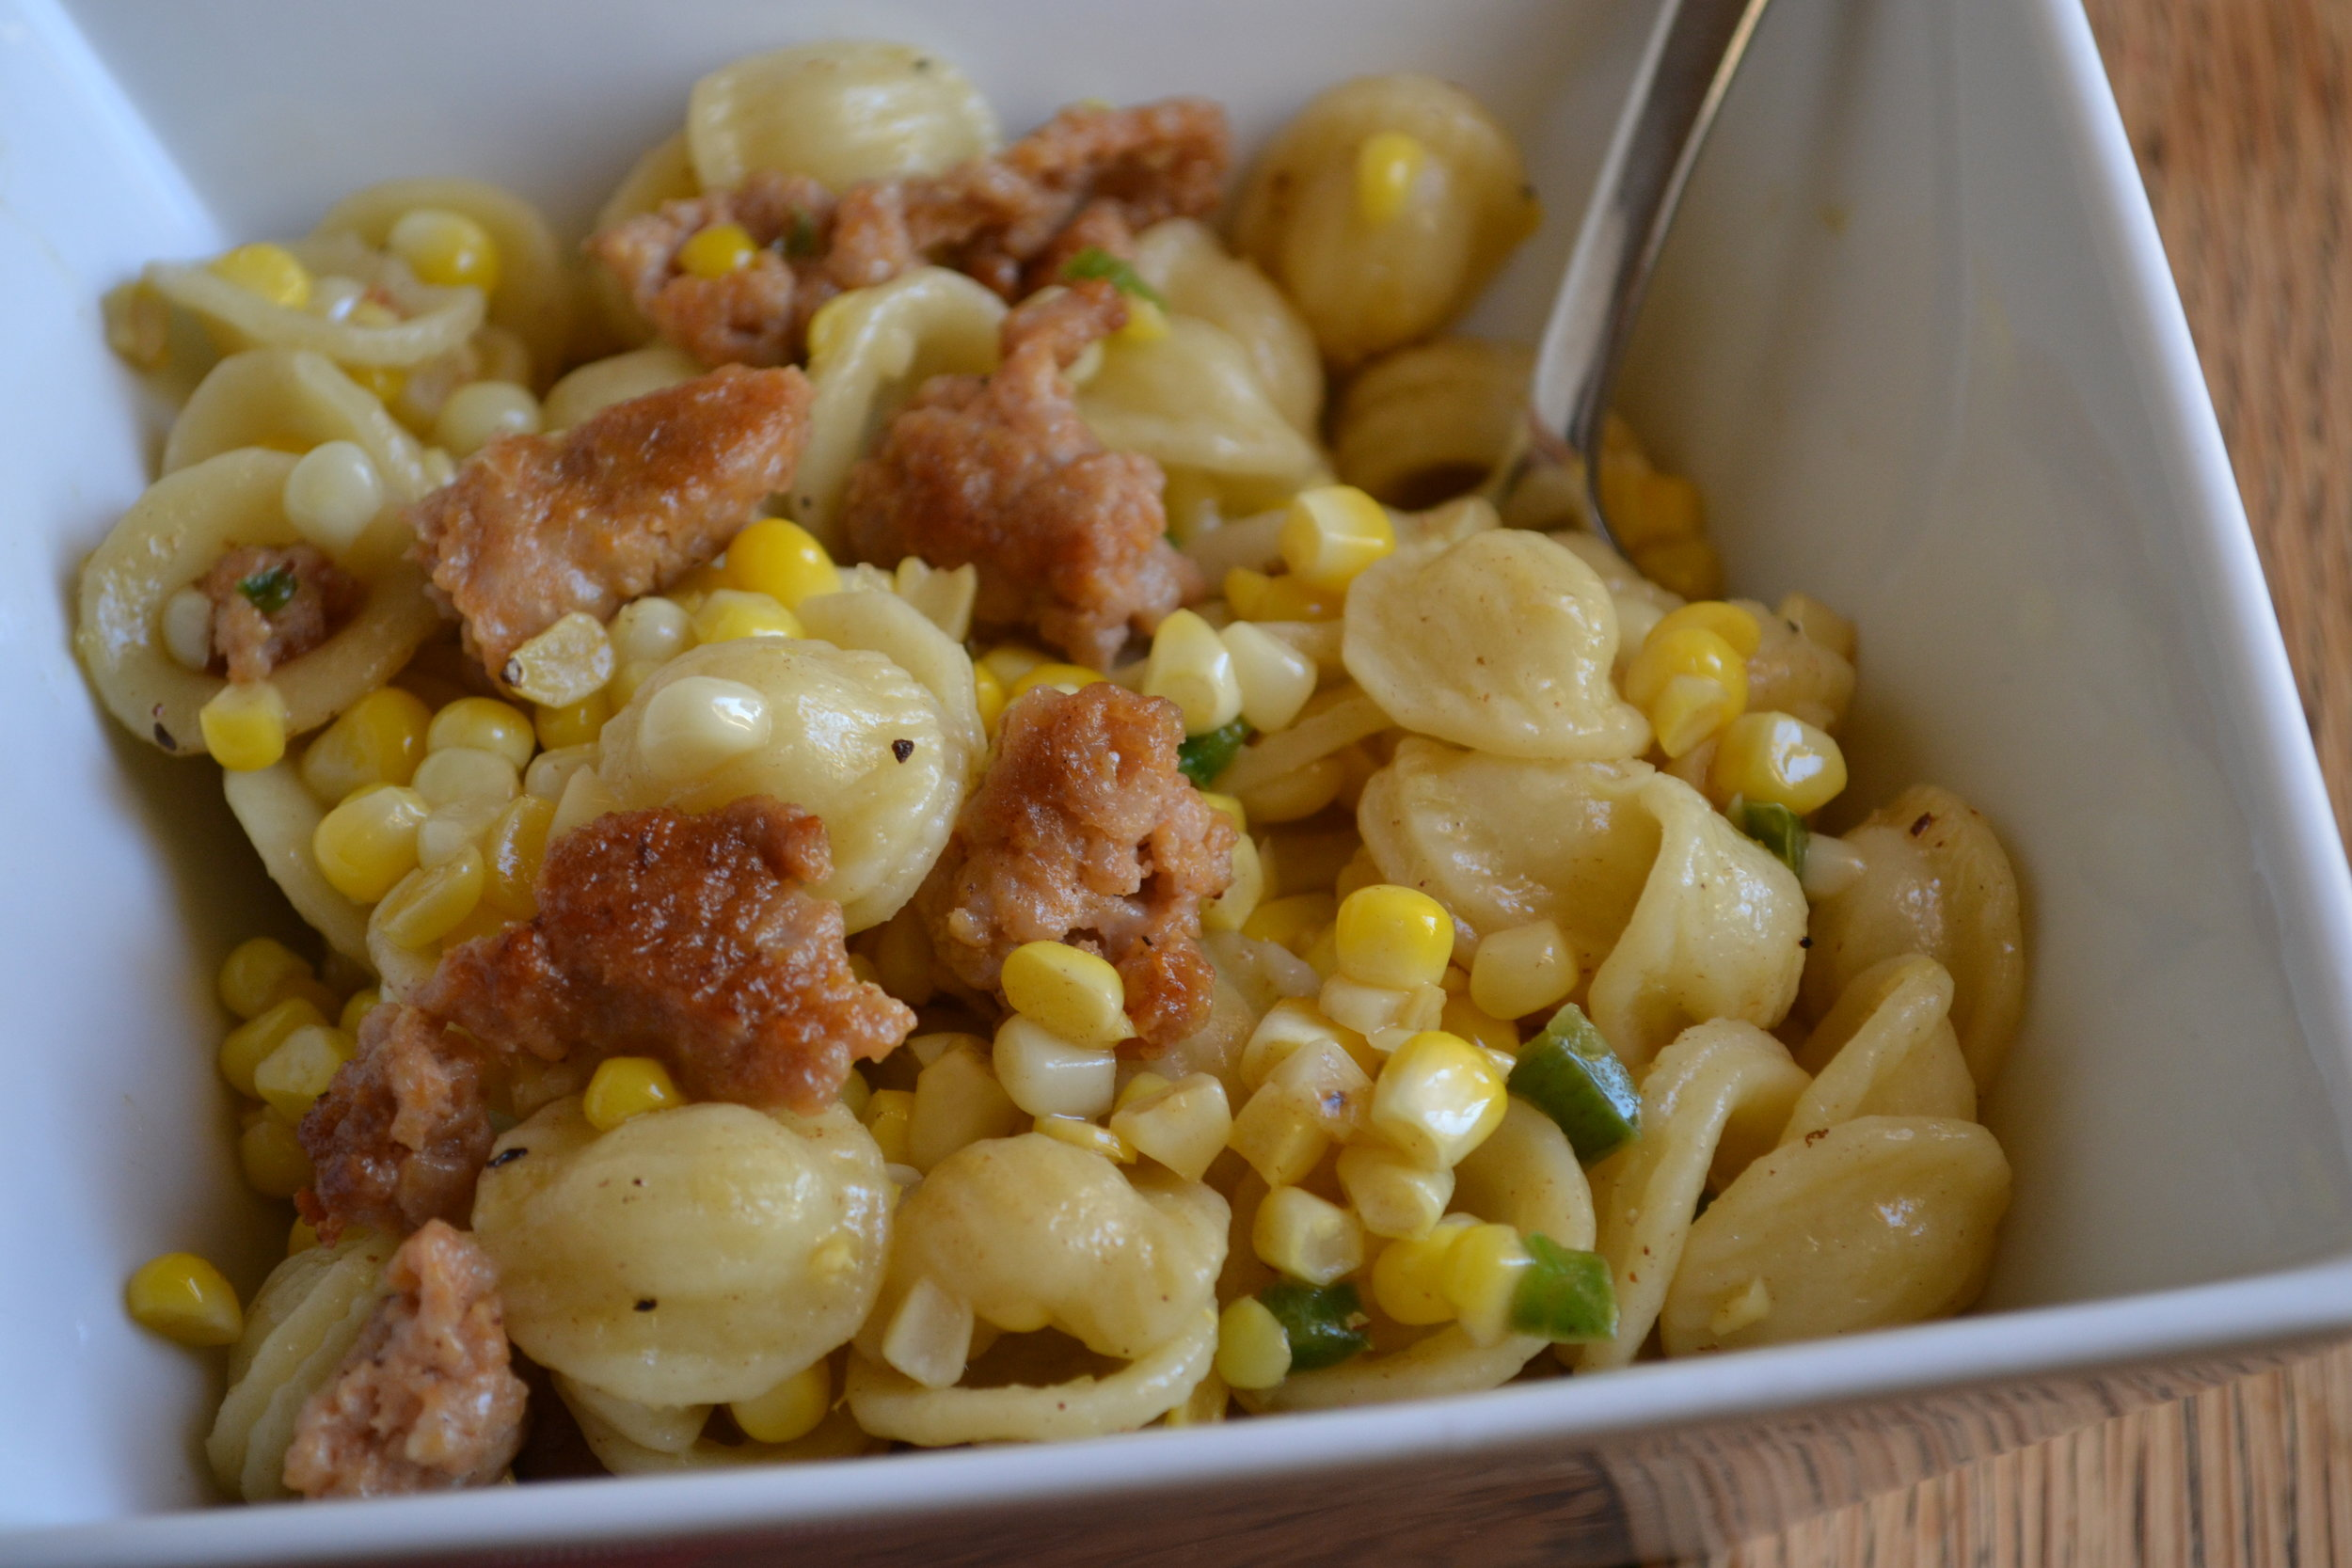 Bowl of Orecchiette with sausage, corn and chiles